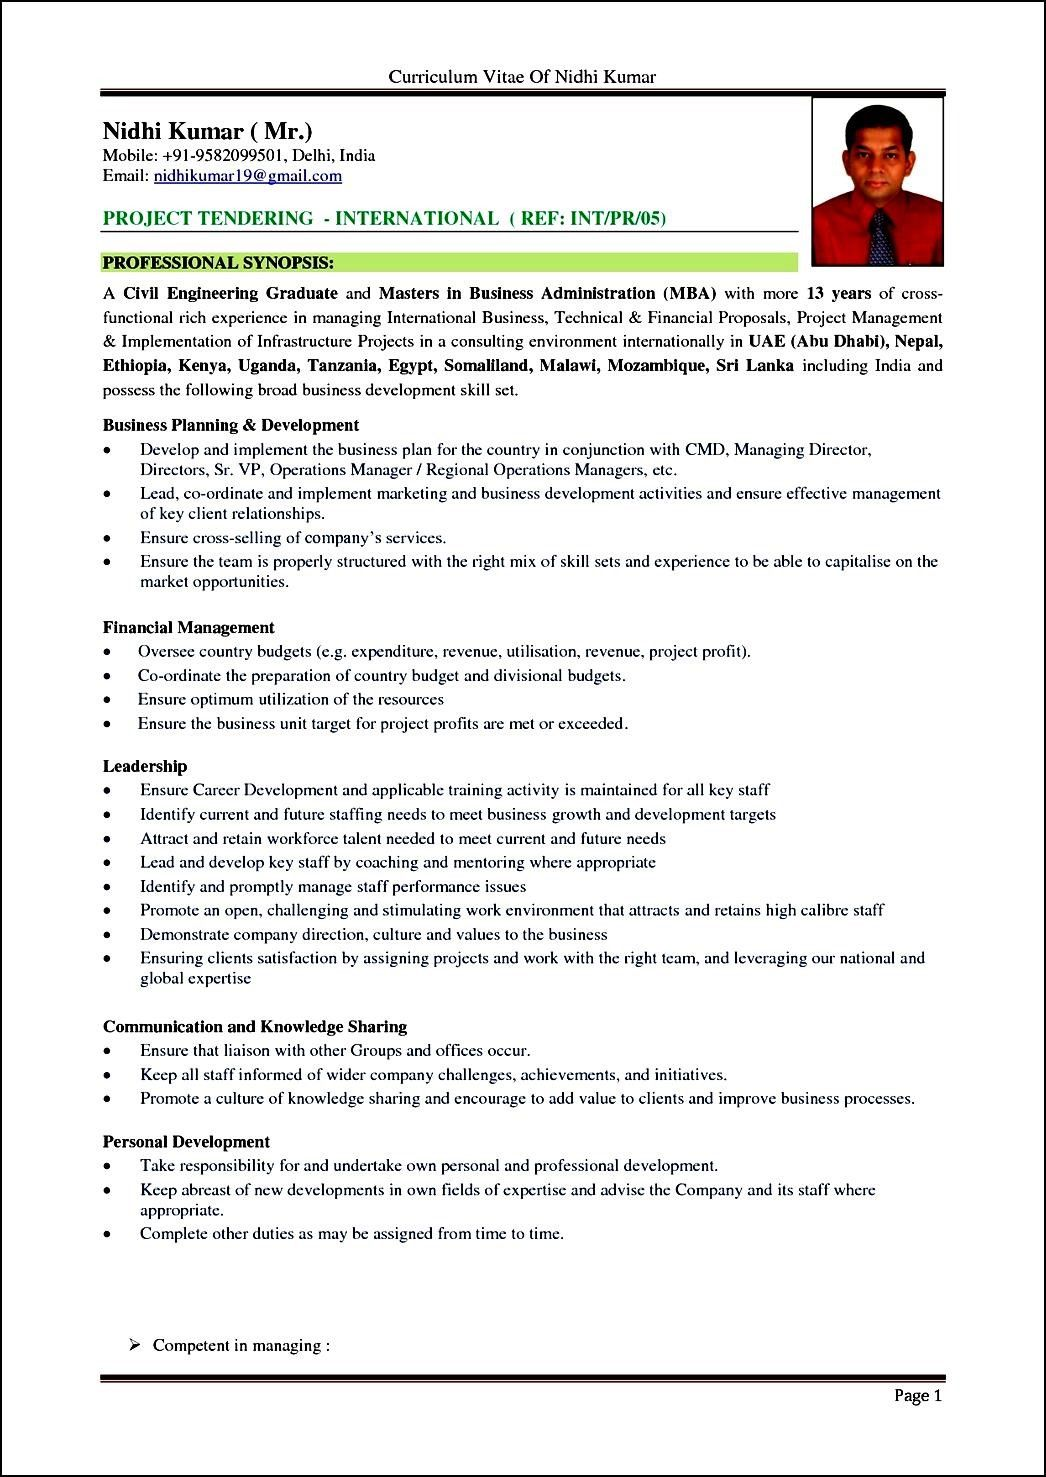 Forbes resume writing image 2